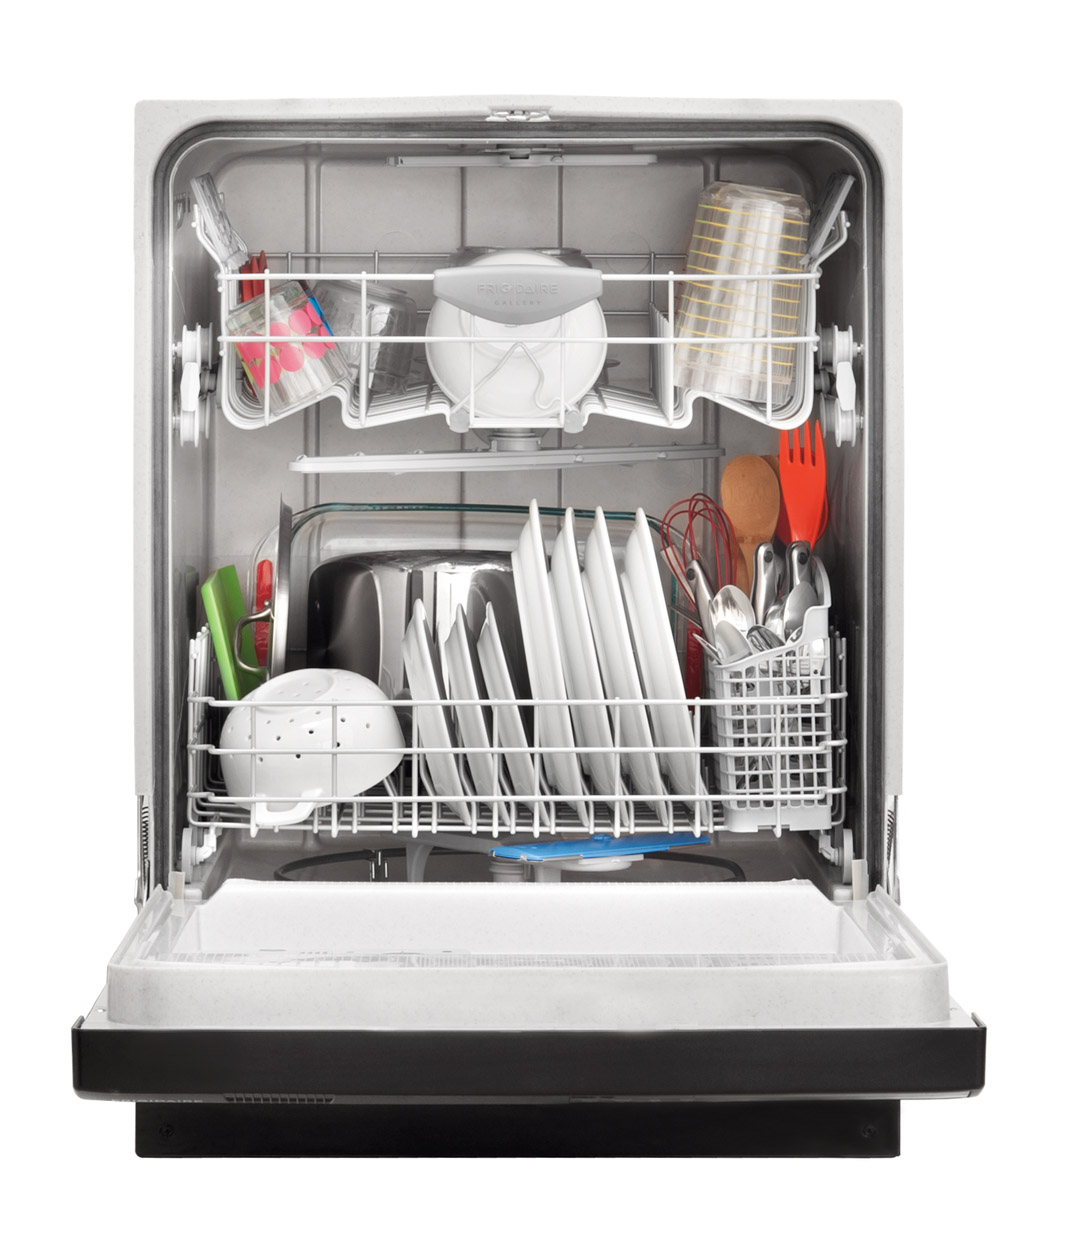 "Frigidaire Gallery Gallery 24"" Built-In Dishwasher w/ BladeSpray™ Wash System - Stainless Steel"